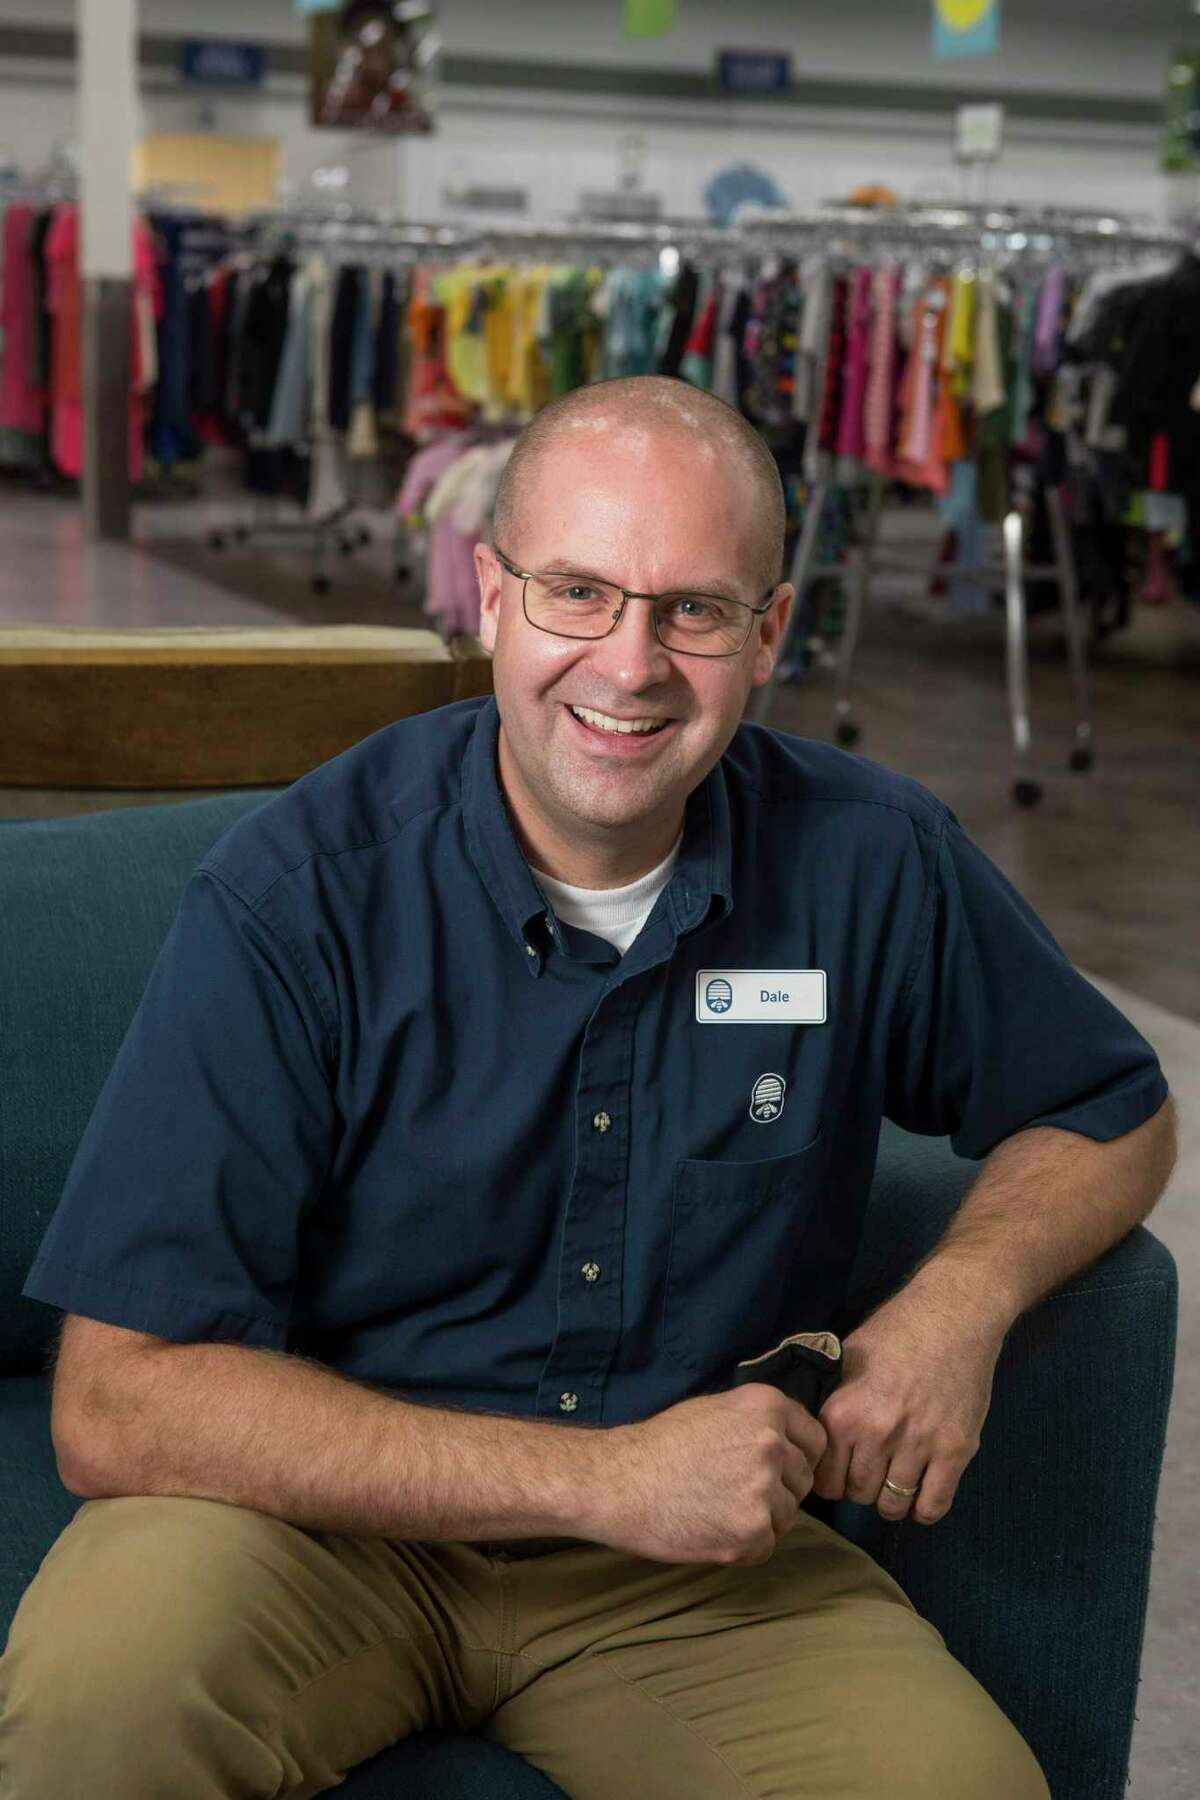 Dale Kerr, location manager of the new Deseret Industries store, poses for a portrait in the thrift store run by the the Church of Jesus Christ of Latter Day Saints Thursday, May 6, 2021 in Houston. The Deseret Industries stores started in 1938, as a general welfare initiative designed to help those in need by providing a high quality thrift store experience in modern large retails locations, while simultaneously providing job training and no-charge job placement services to anyone who needs them. They have always operated in the seven western states and they chose Houston for their first location east of the Rocky Mountains. It opened in Houston on April 15, on FM 1960 near the Willowbrook Mall and will serve the Houston area.